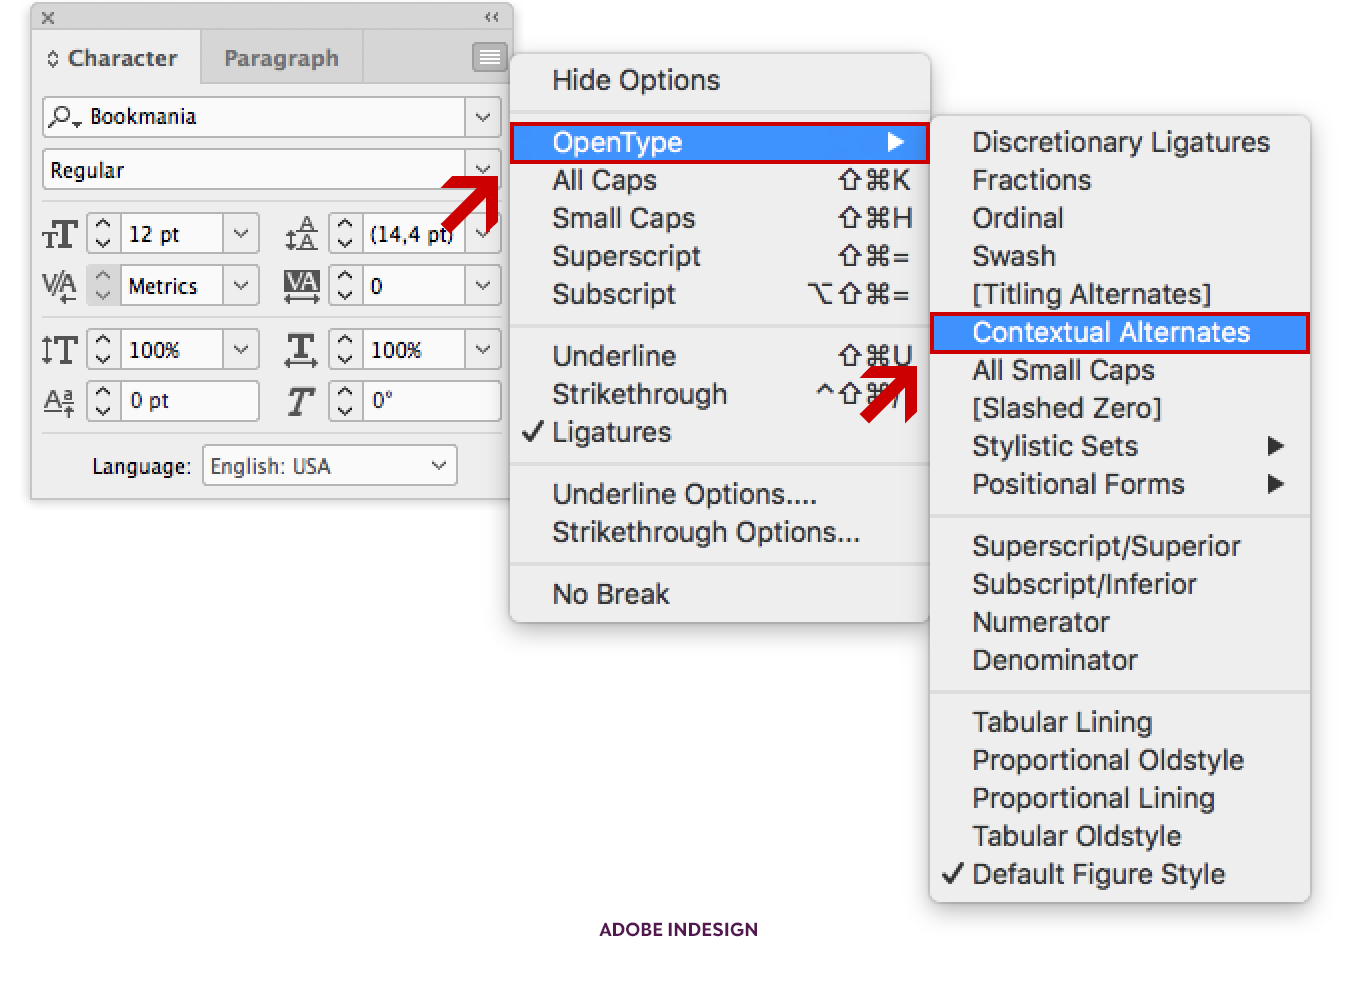 Location of the Contextual Alternates OpenType feature in Adobe InDesign CC.